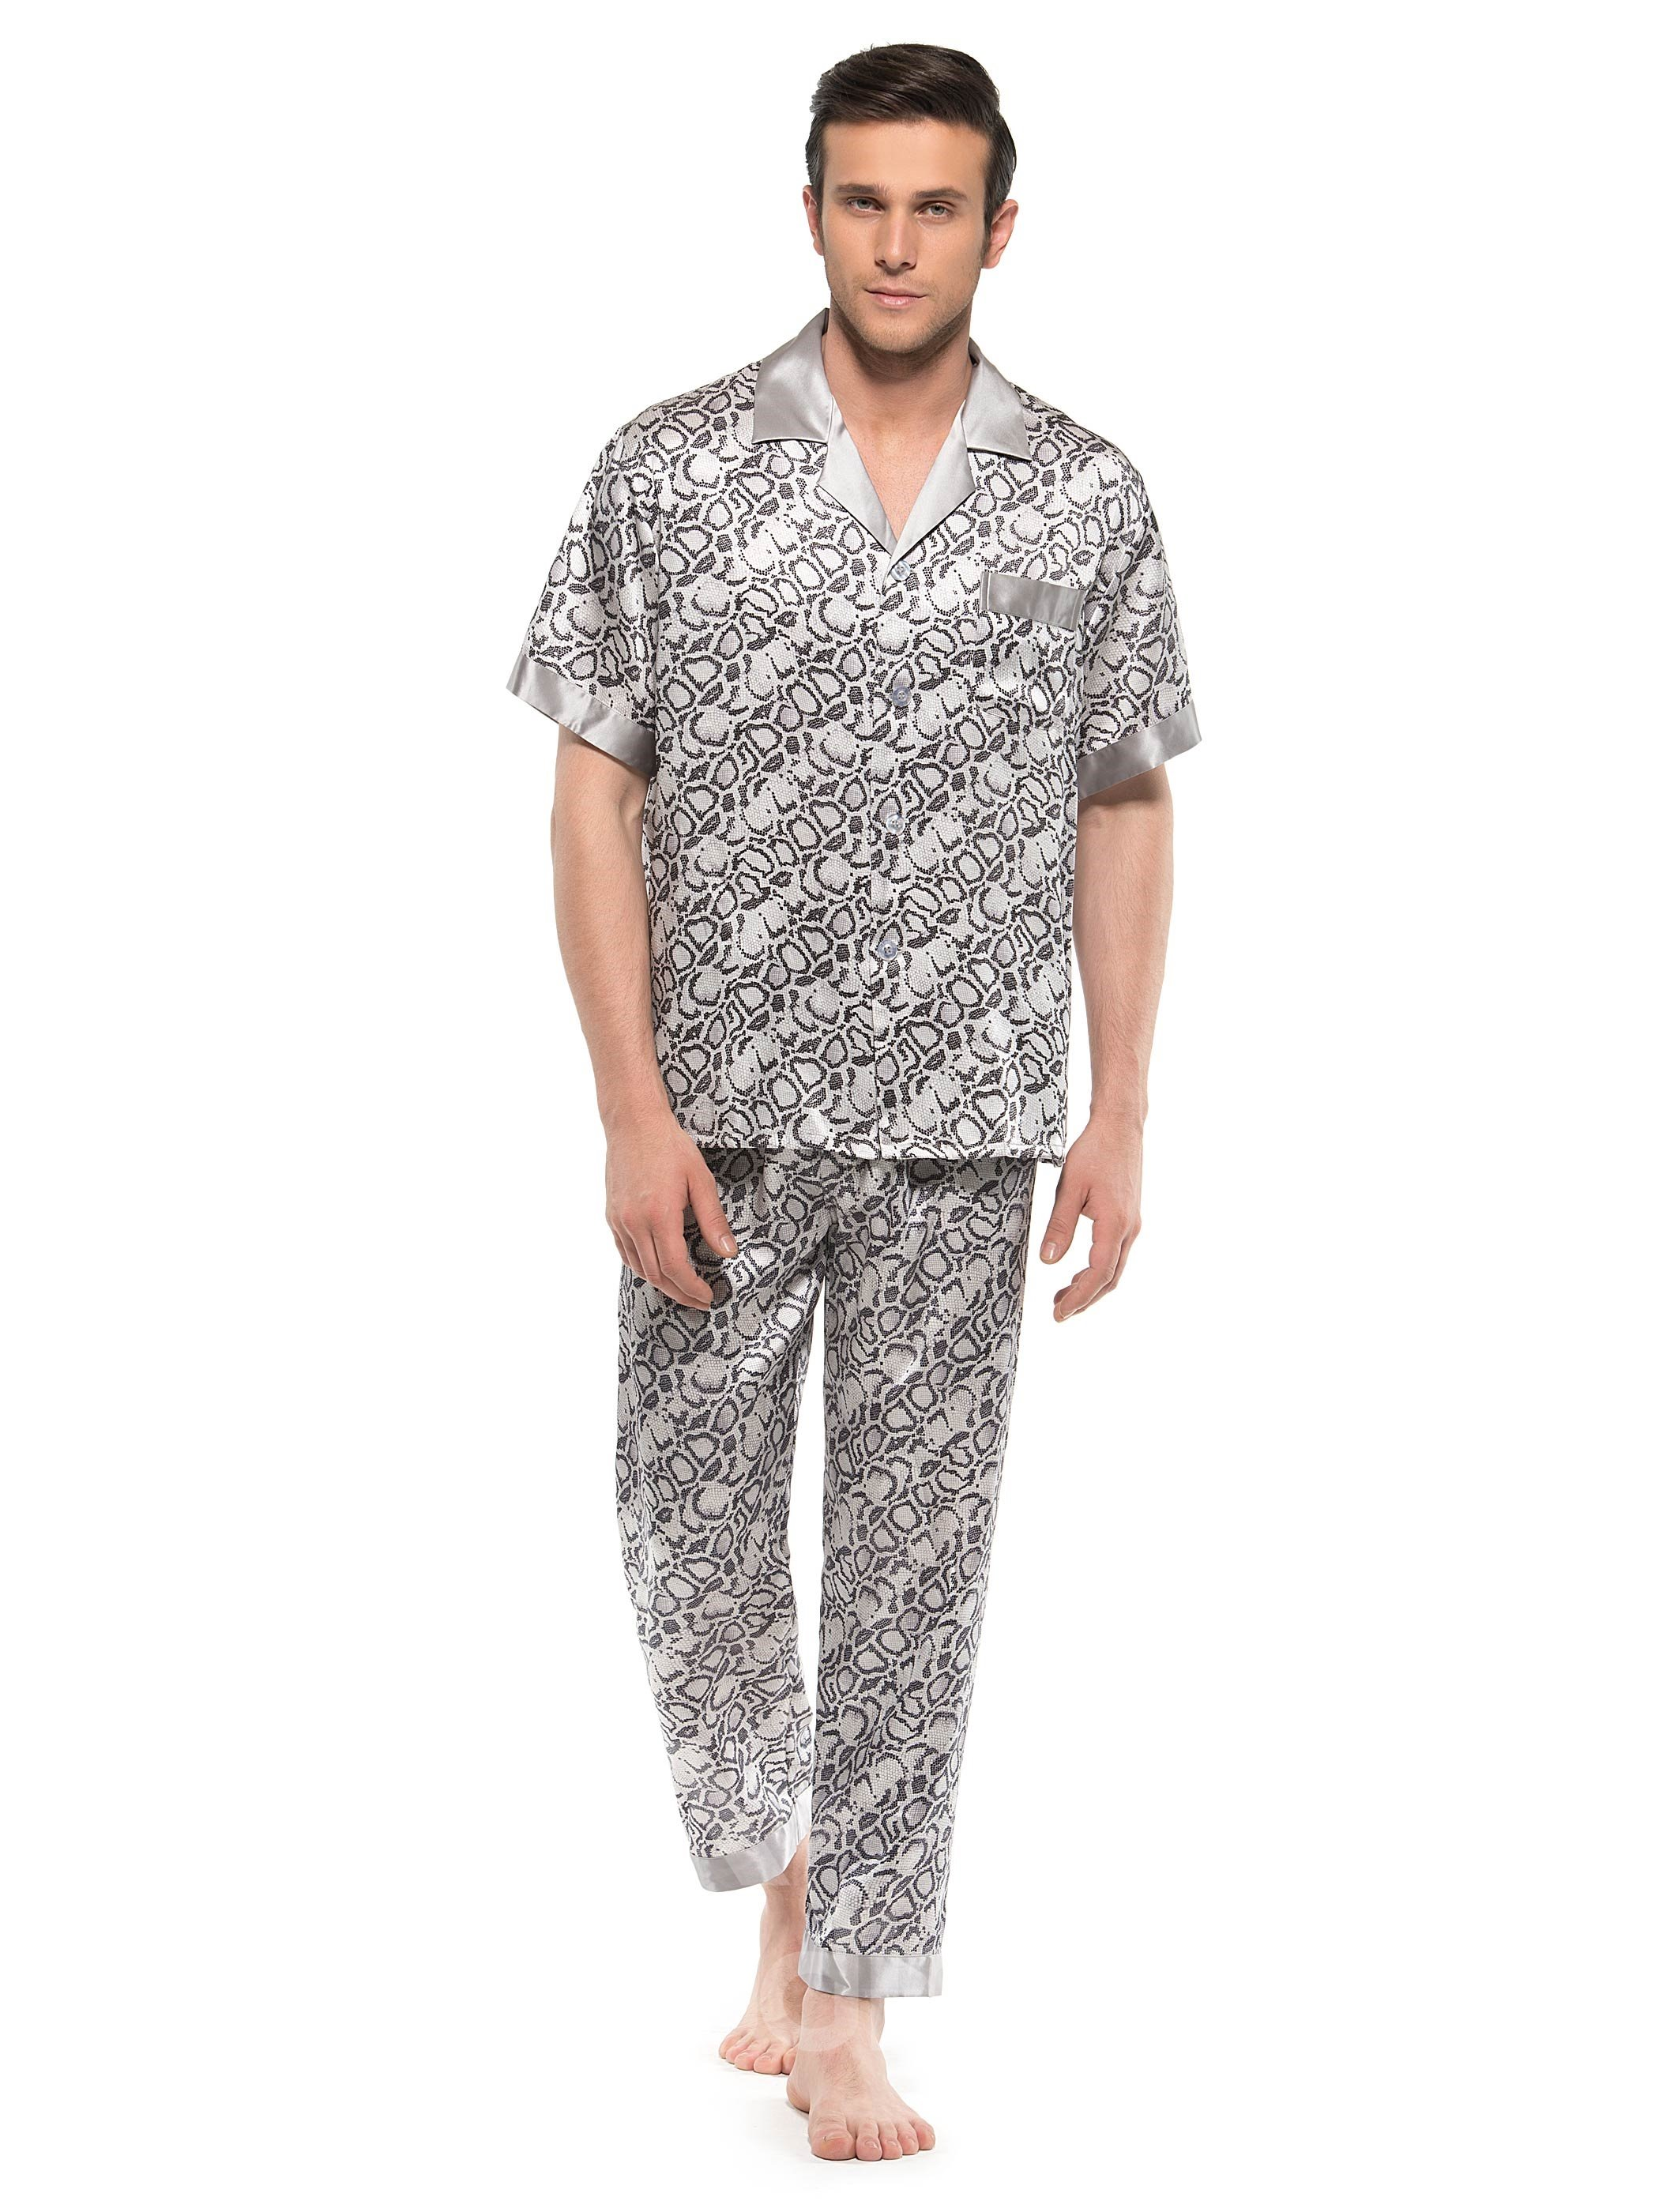 Stylish Snake Skin Pattern Short Sleeve Open Collar Silk Pajamas